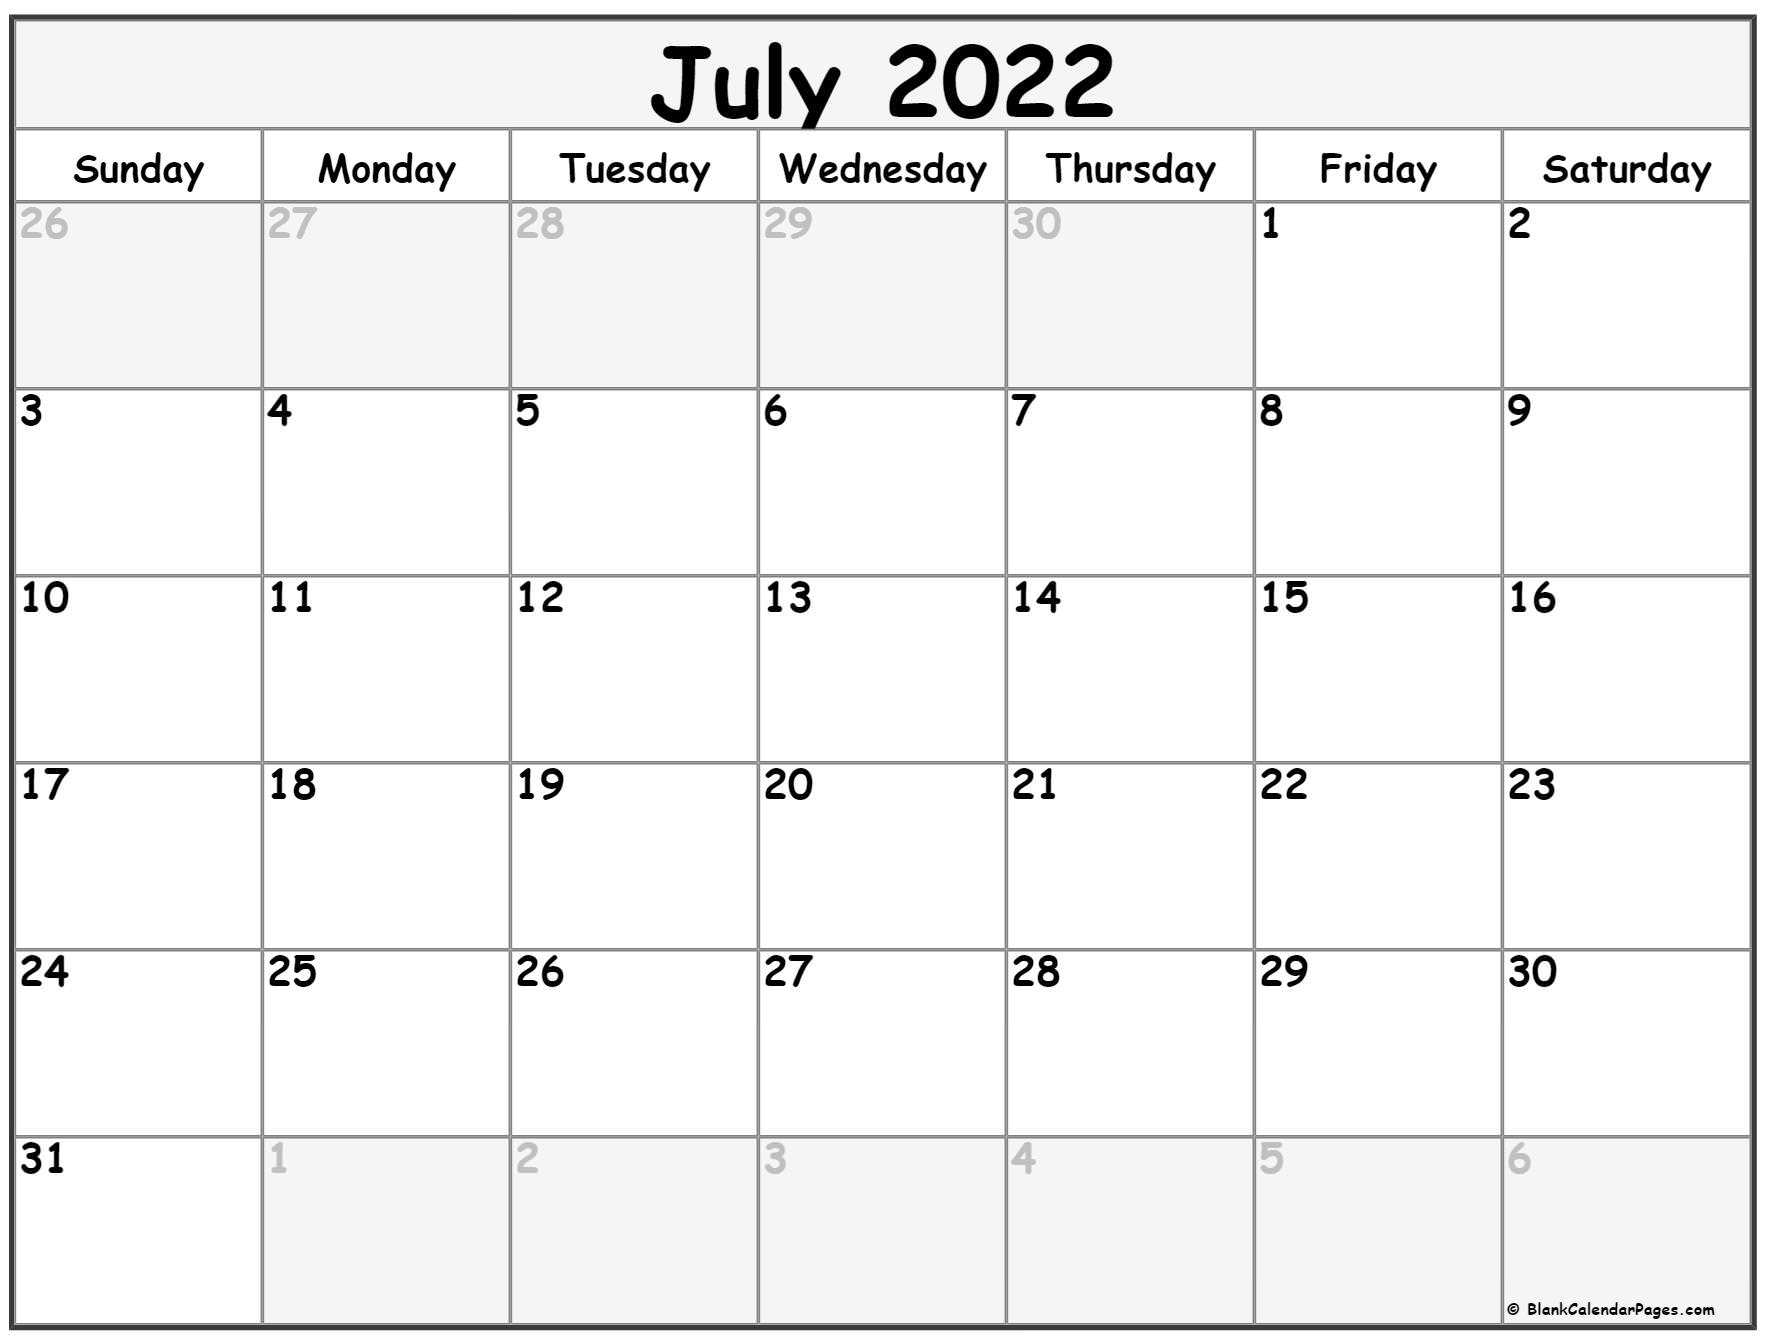 It's easy to get distracted. July 2022 calendar | free printable calendar templates